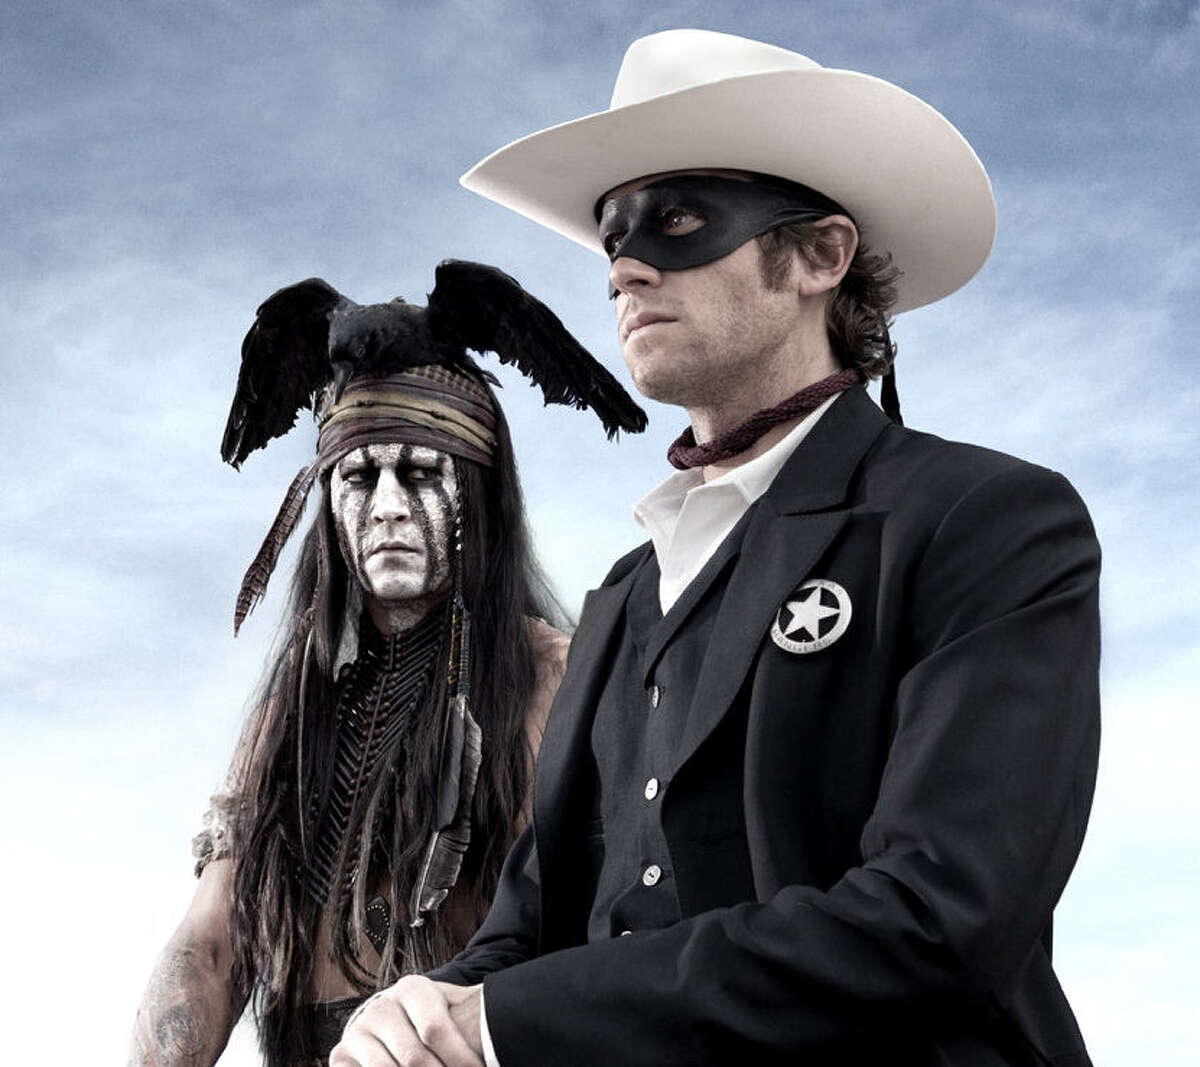 Tonto (Johnny Depp, left) had no apparent friendship with The Lone Ranger (Armie Hammer), one of many strikes against